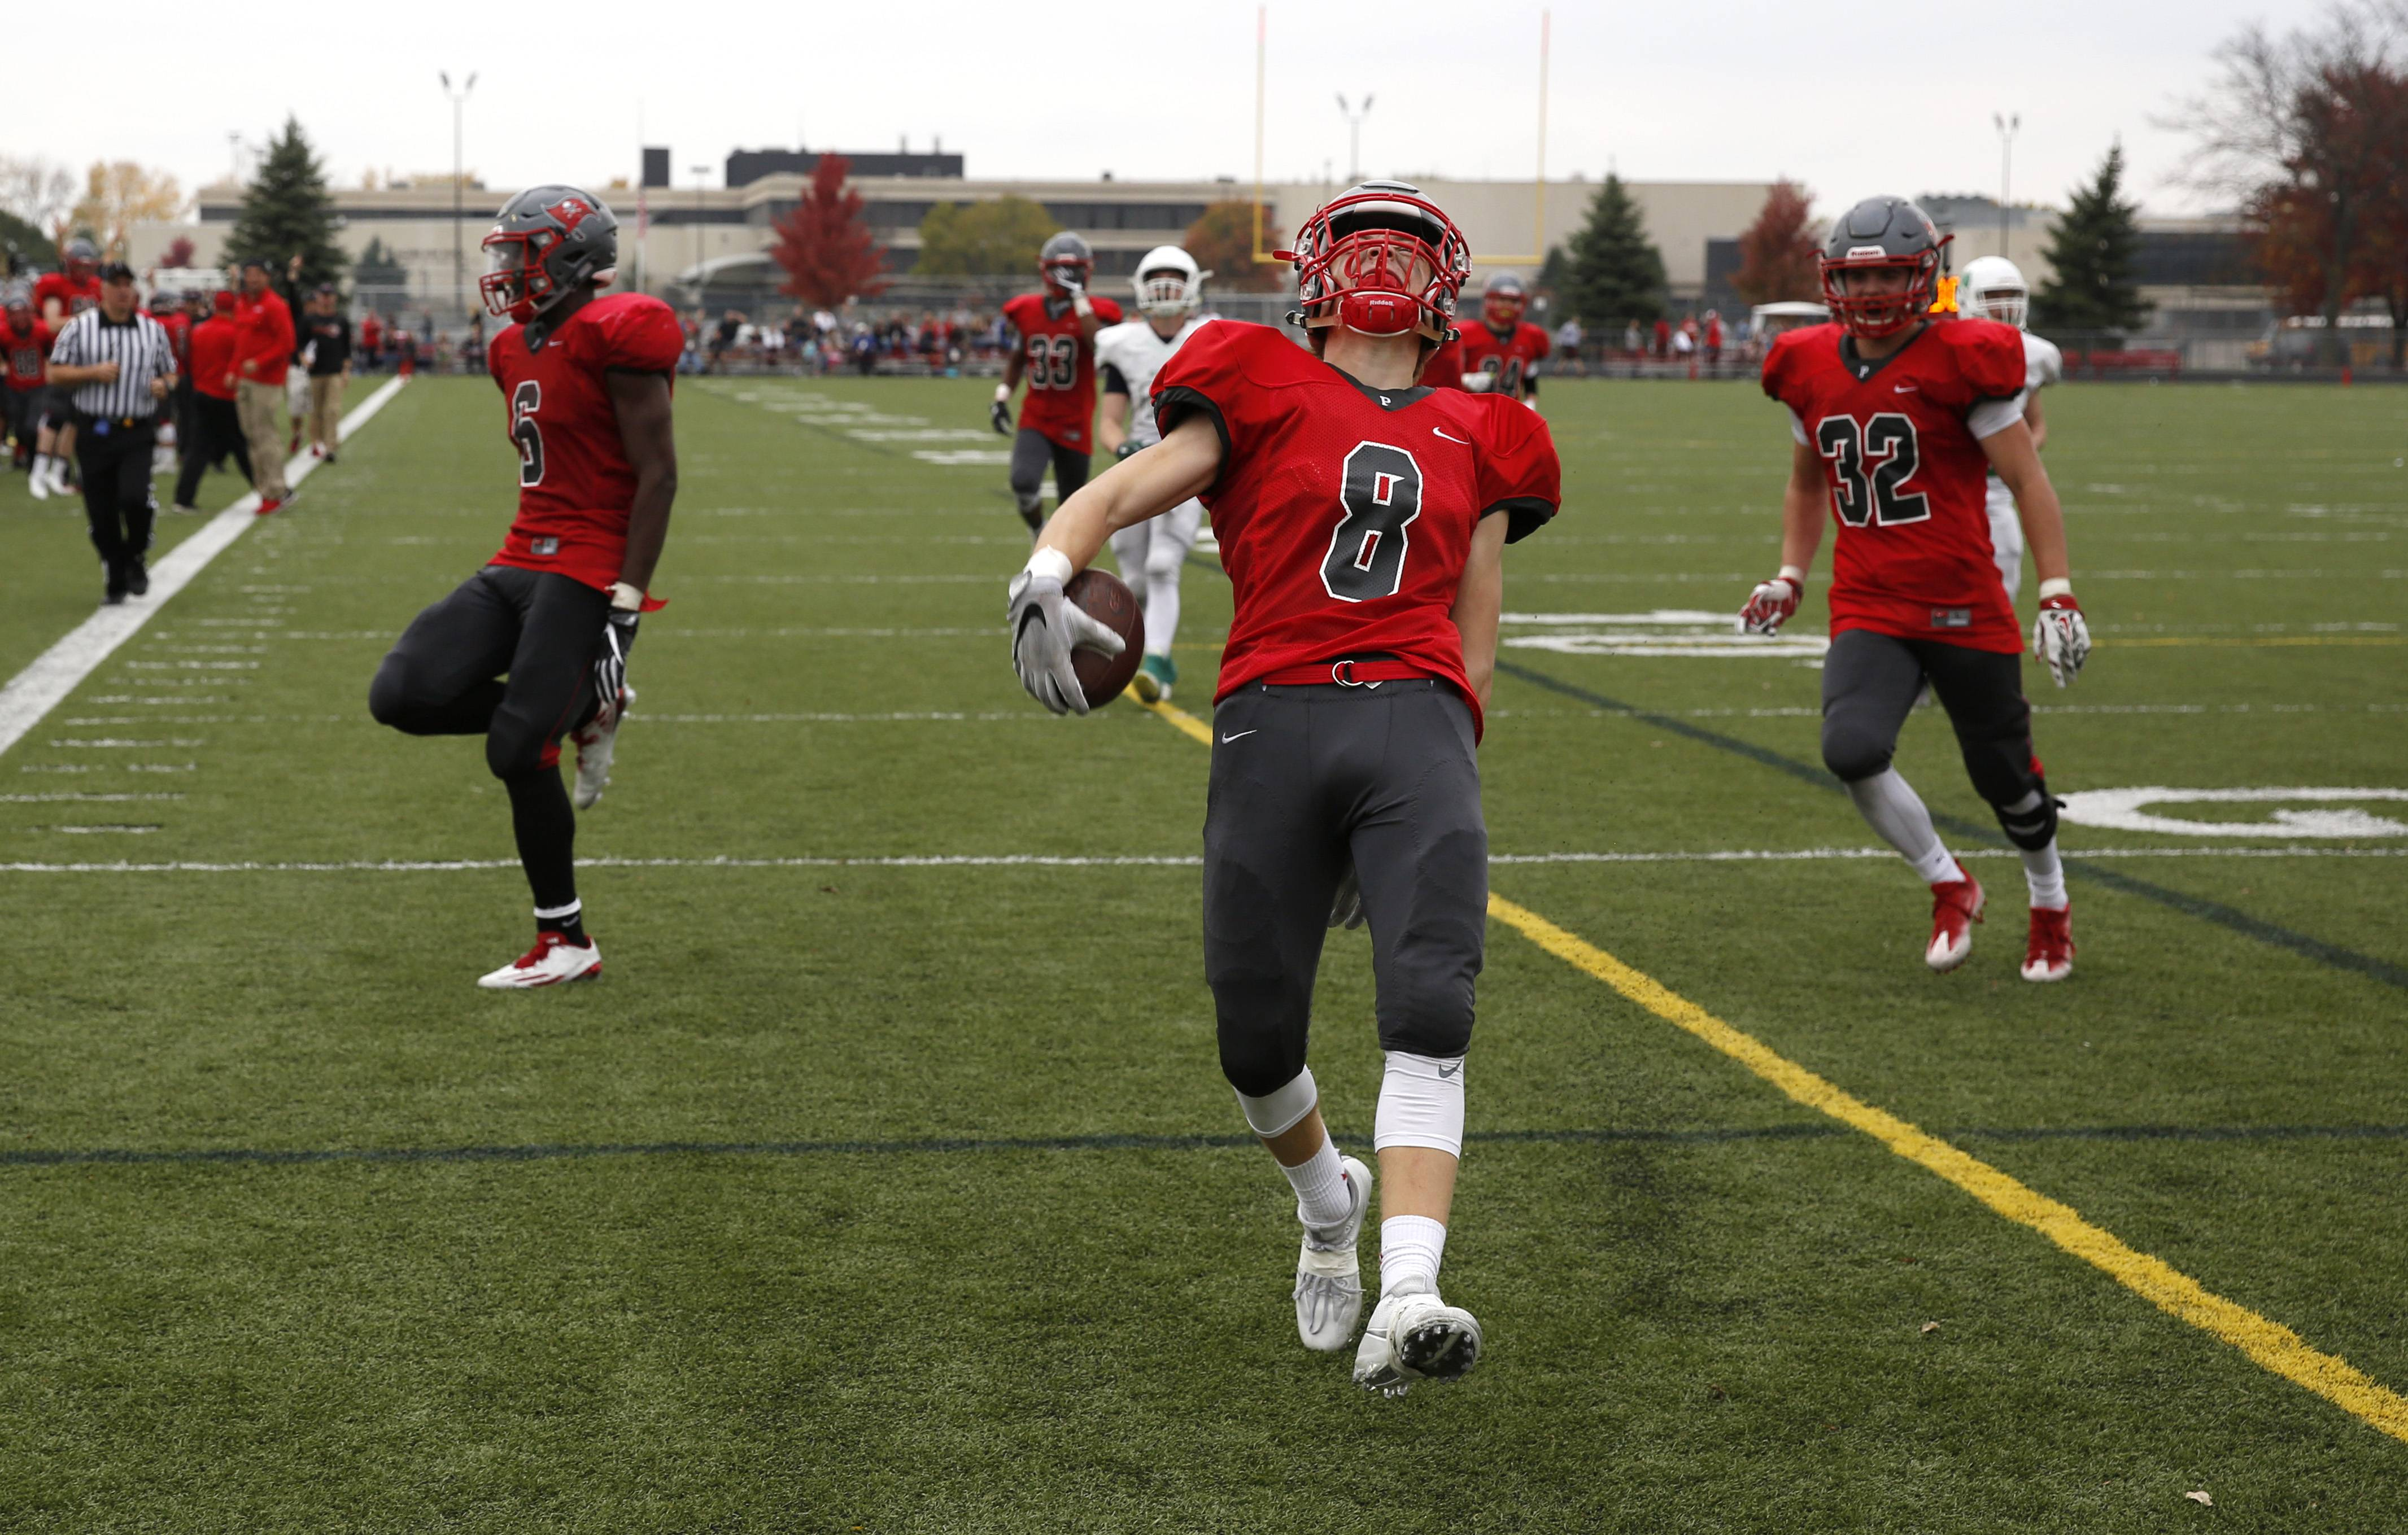 Palatine's Jake Moerti (8) celebrates his fourth quarter interception return for touchdown against Notre Dame during the first round of the Class 8A football playoffs in Palatine.